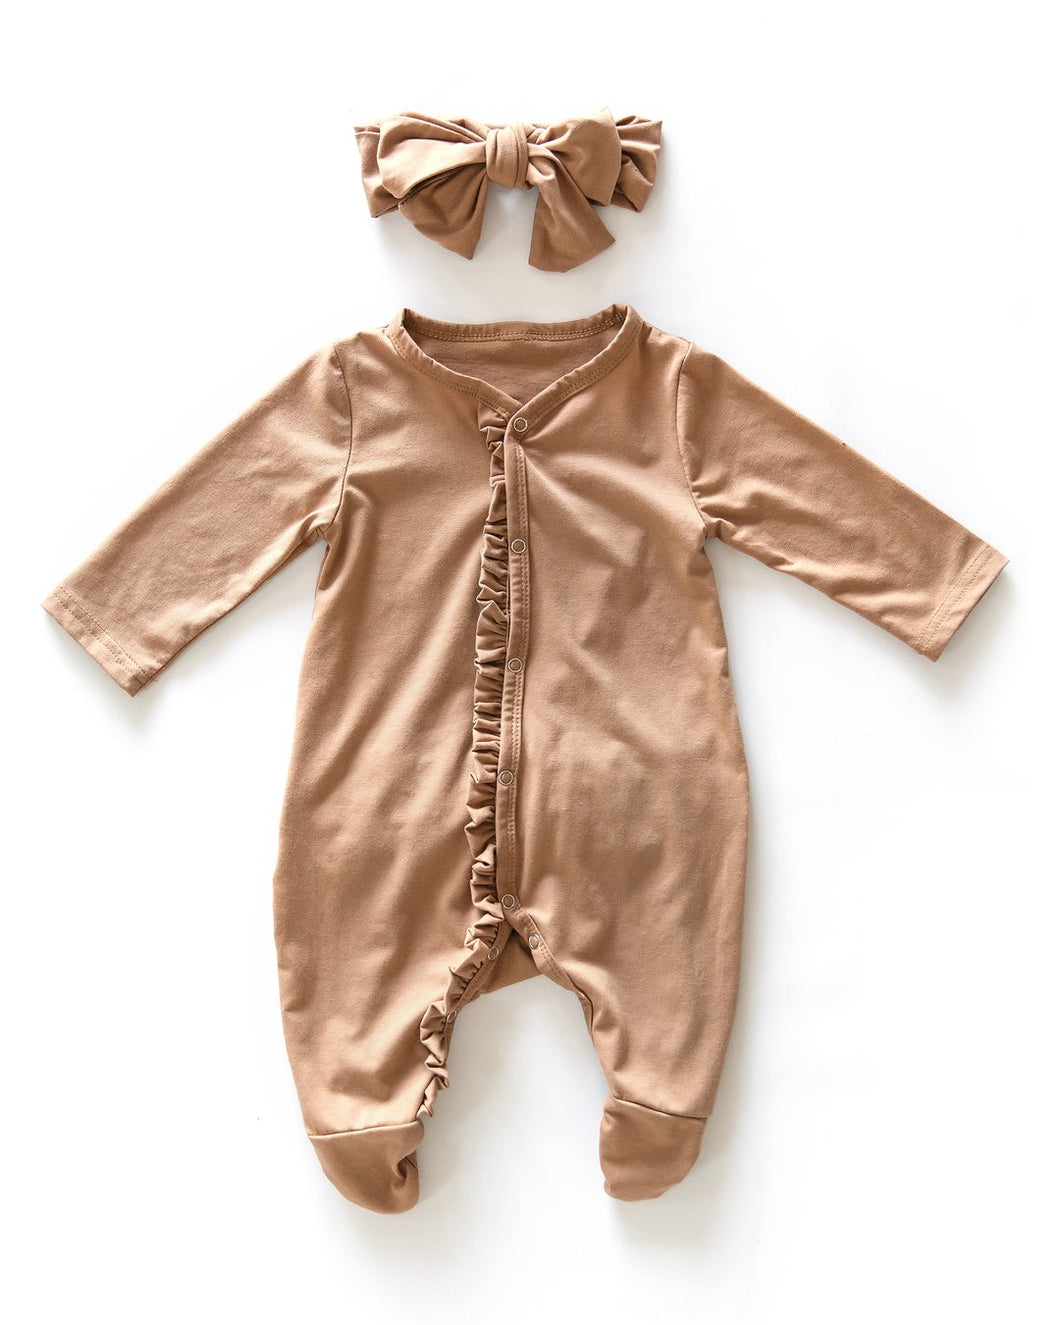 Ruffle Suit - Caramel - Little Boo Store